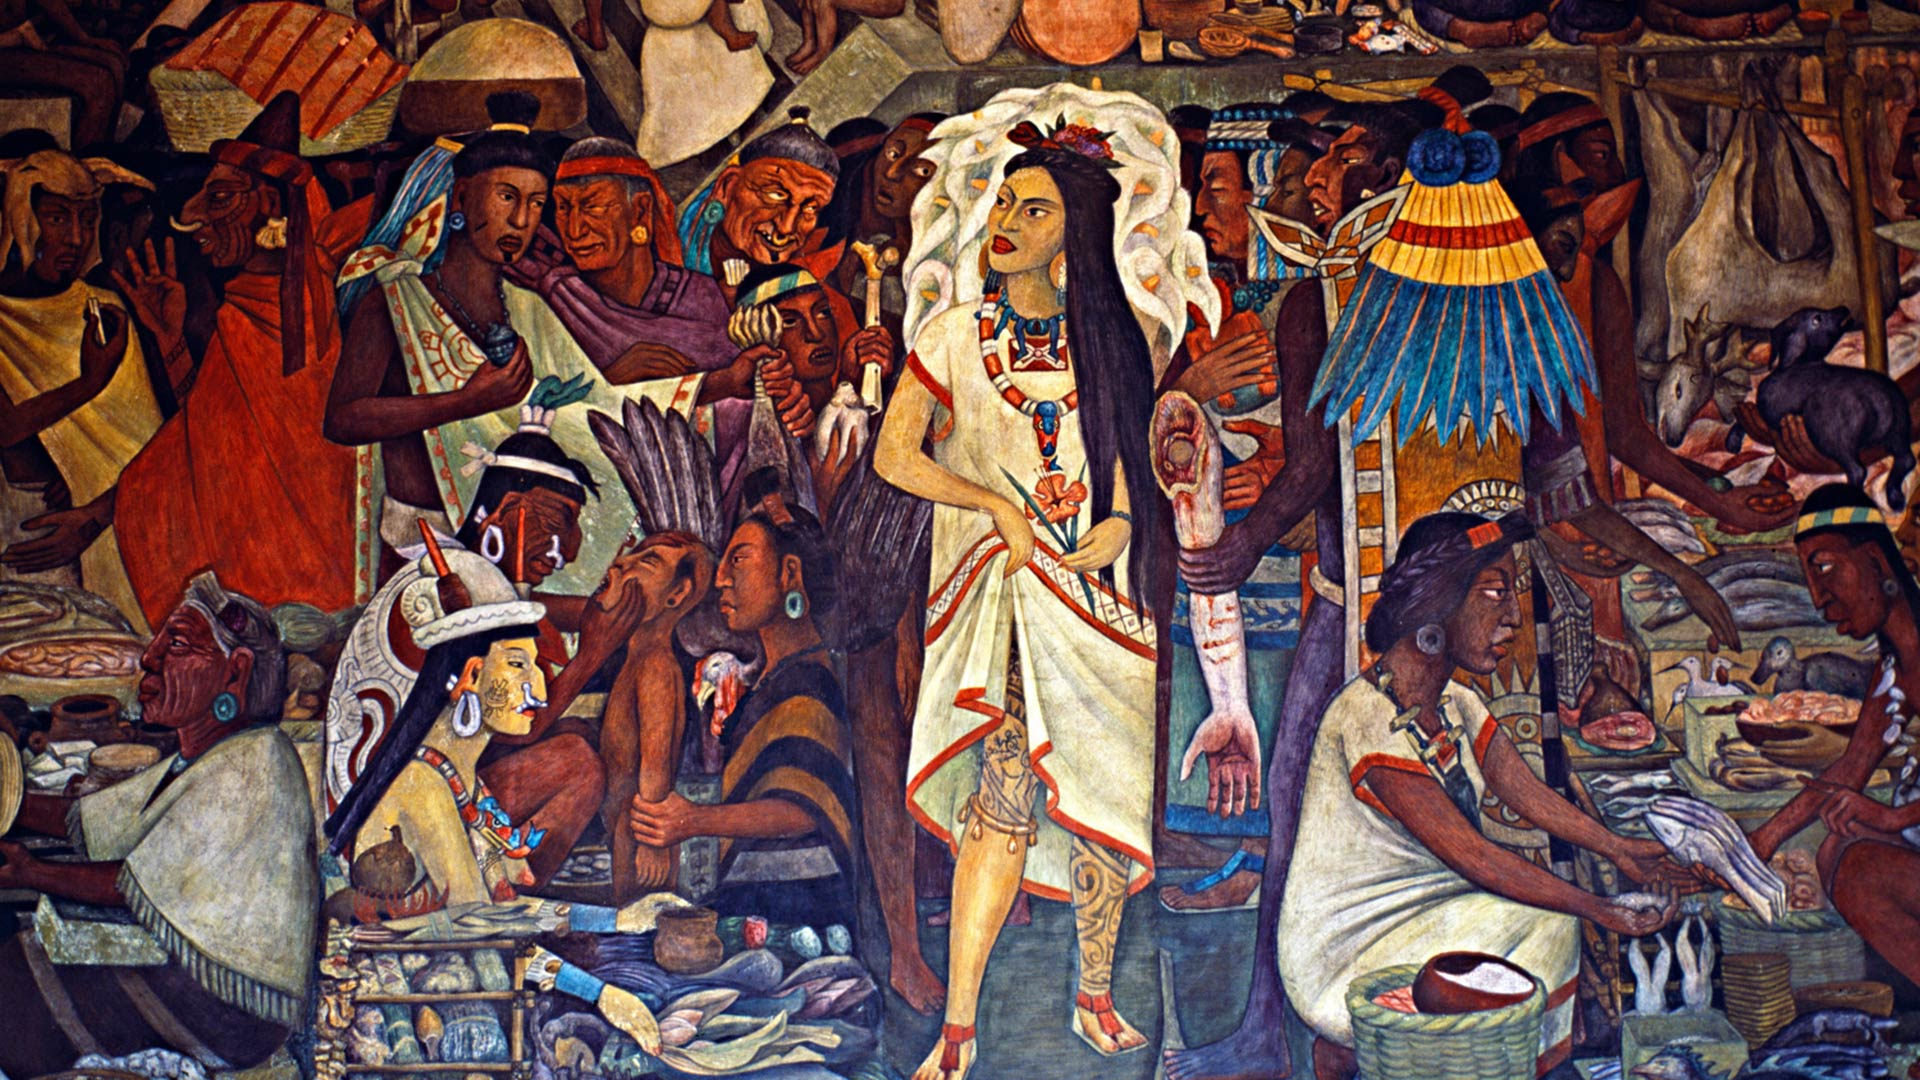 Murals inside the National Palace painted by Diego Rivera